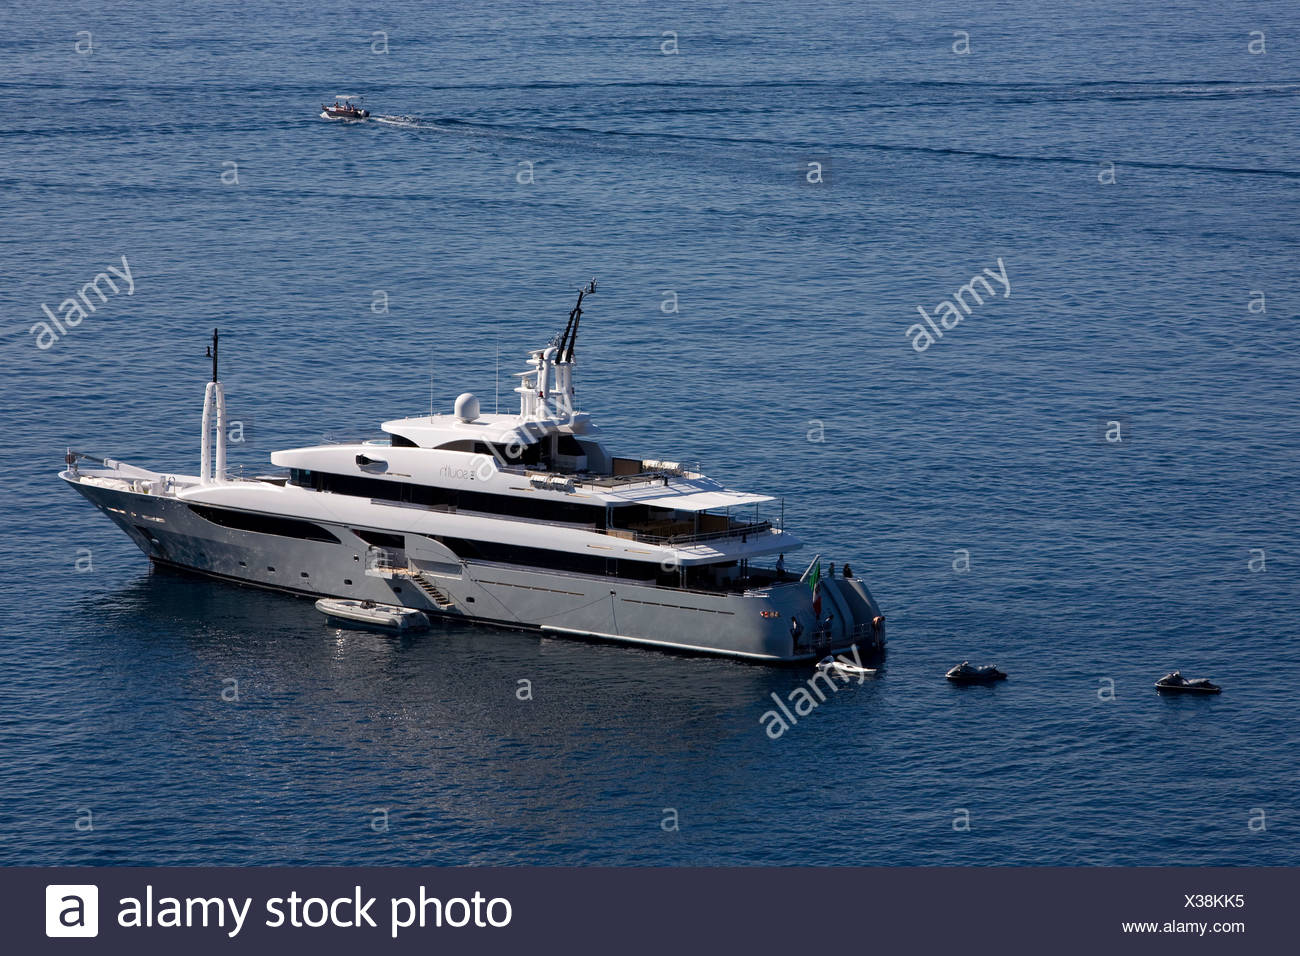 Yacht of the fashion designers Dolce & Gabbana, D & C, water sports, luxury yacht, Taormina, province of Messina, Sicily, Italy - Stock Image